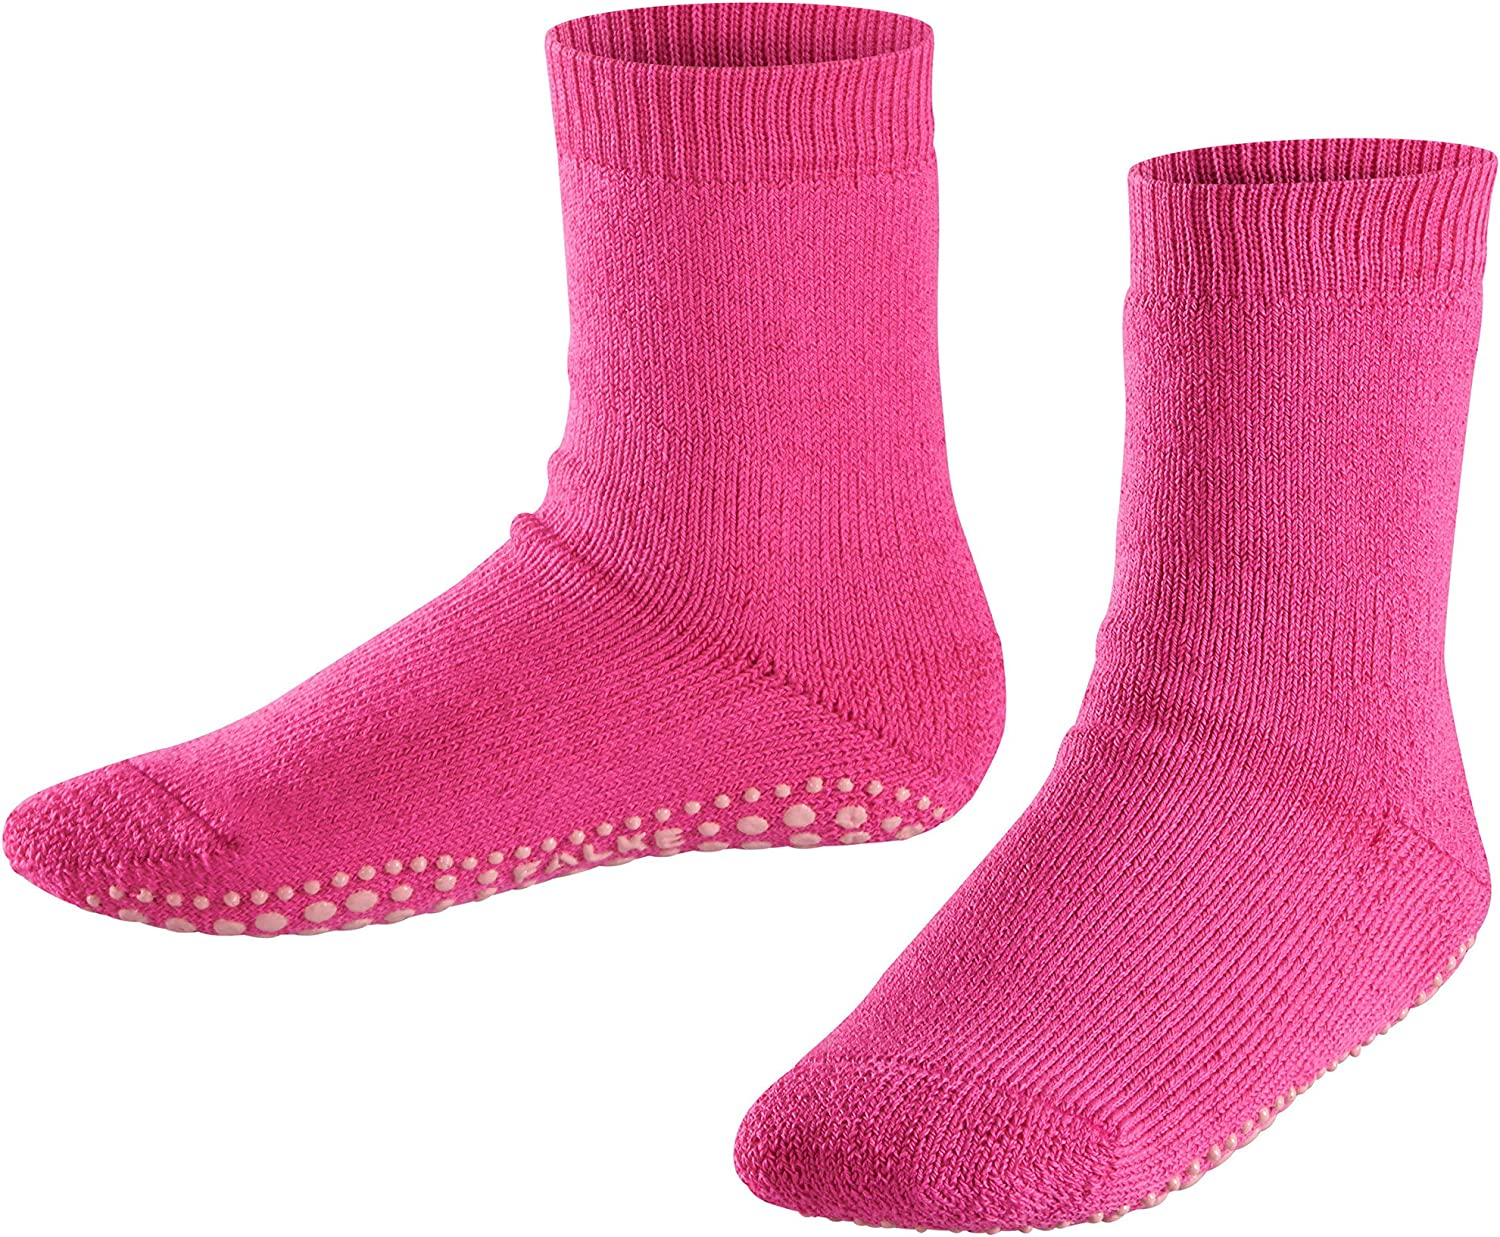 UK sizes 3 - 8 EU 19-42 1 Pair Cotton//Wool Blend non-slip ideal lounge sock Warm Multiple Colours plush sole kid FALKE Kids Catspads Slipper Socks